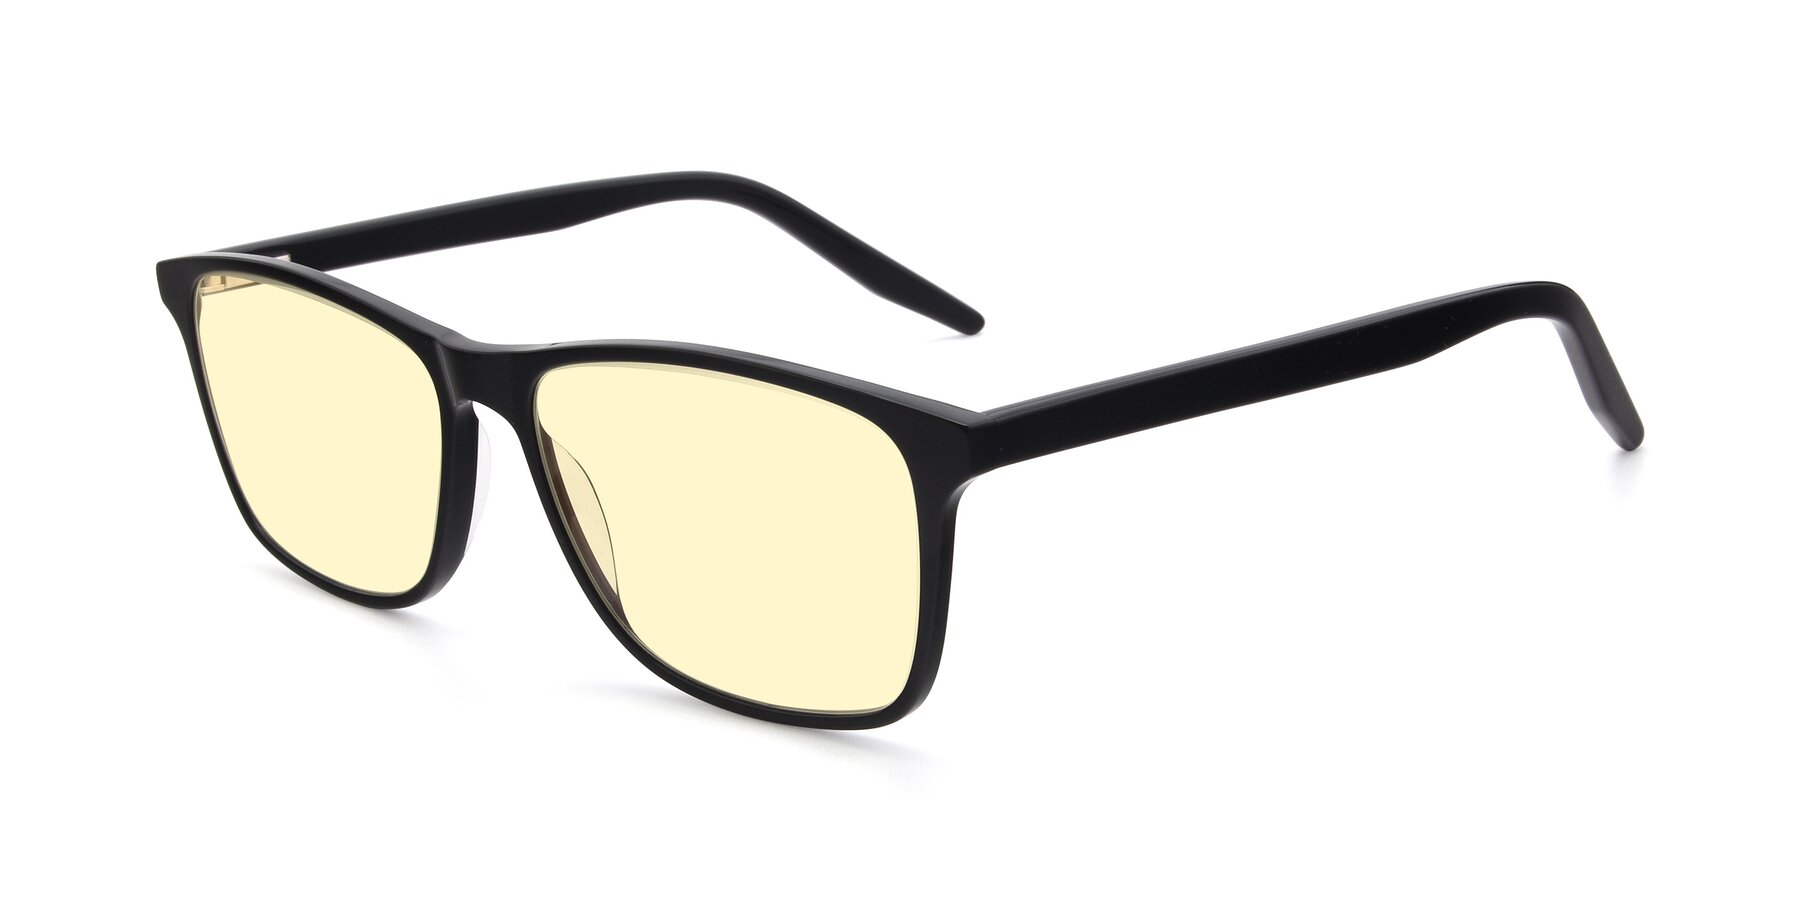 Angle of 17500 in Black with Light Yellow Tinted Lenses